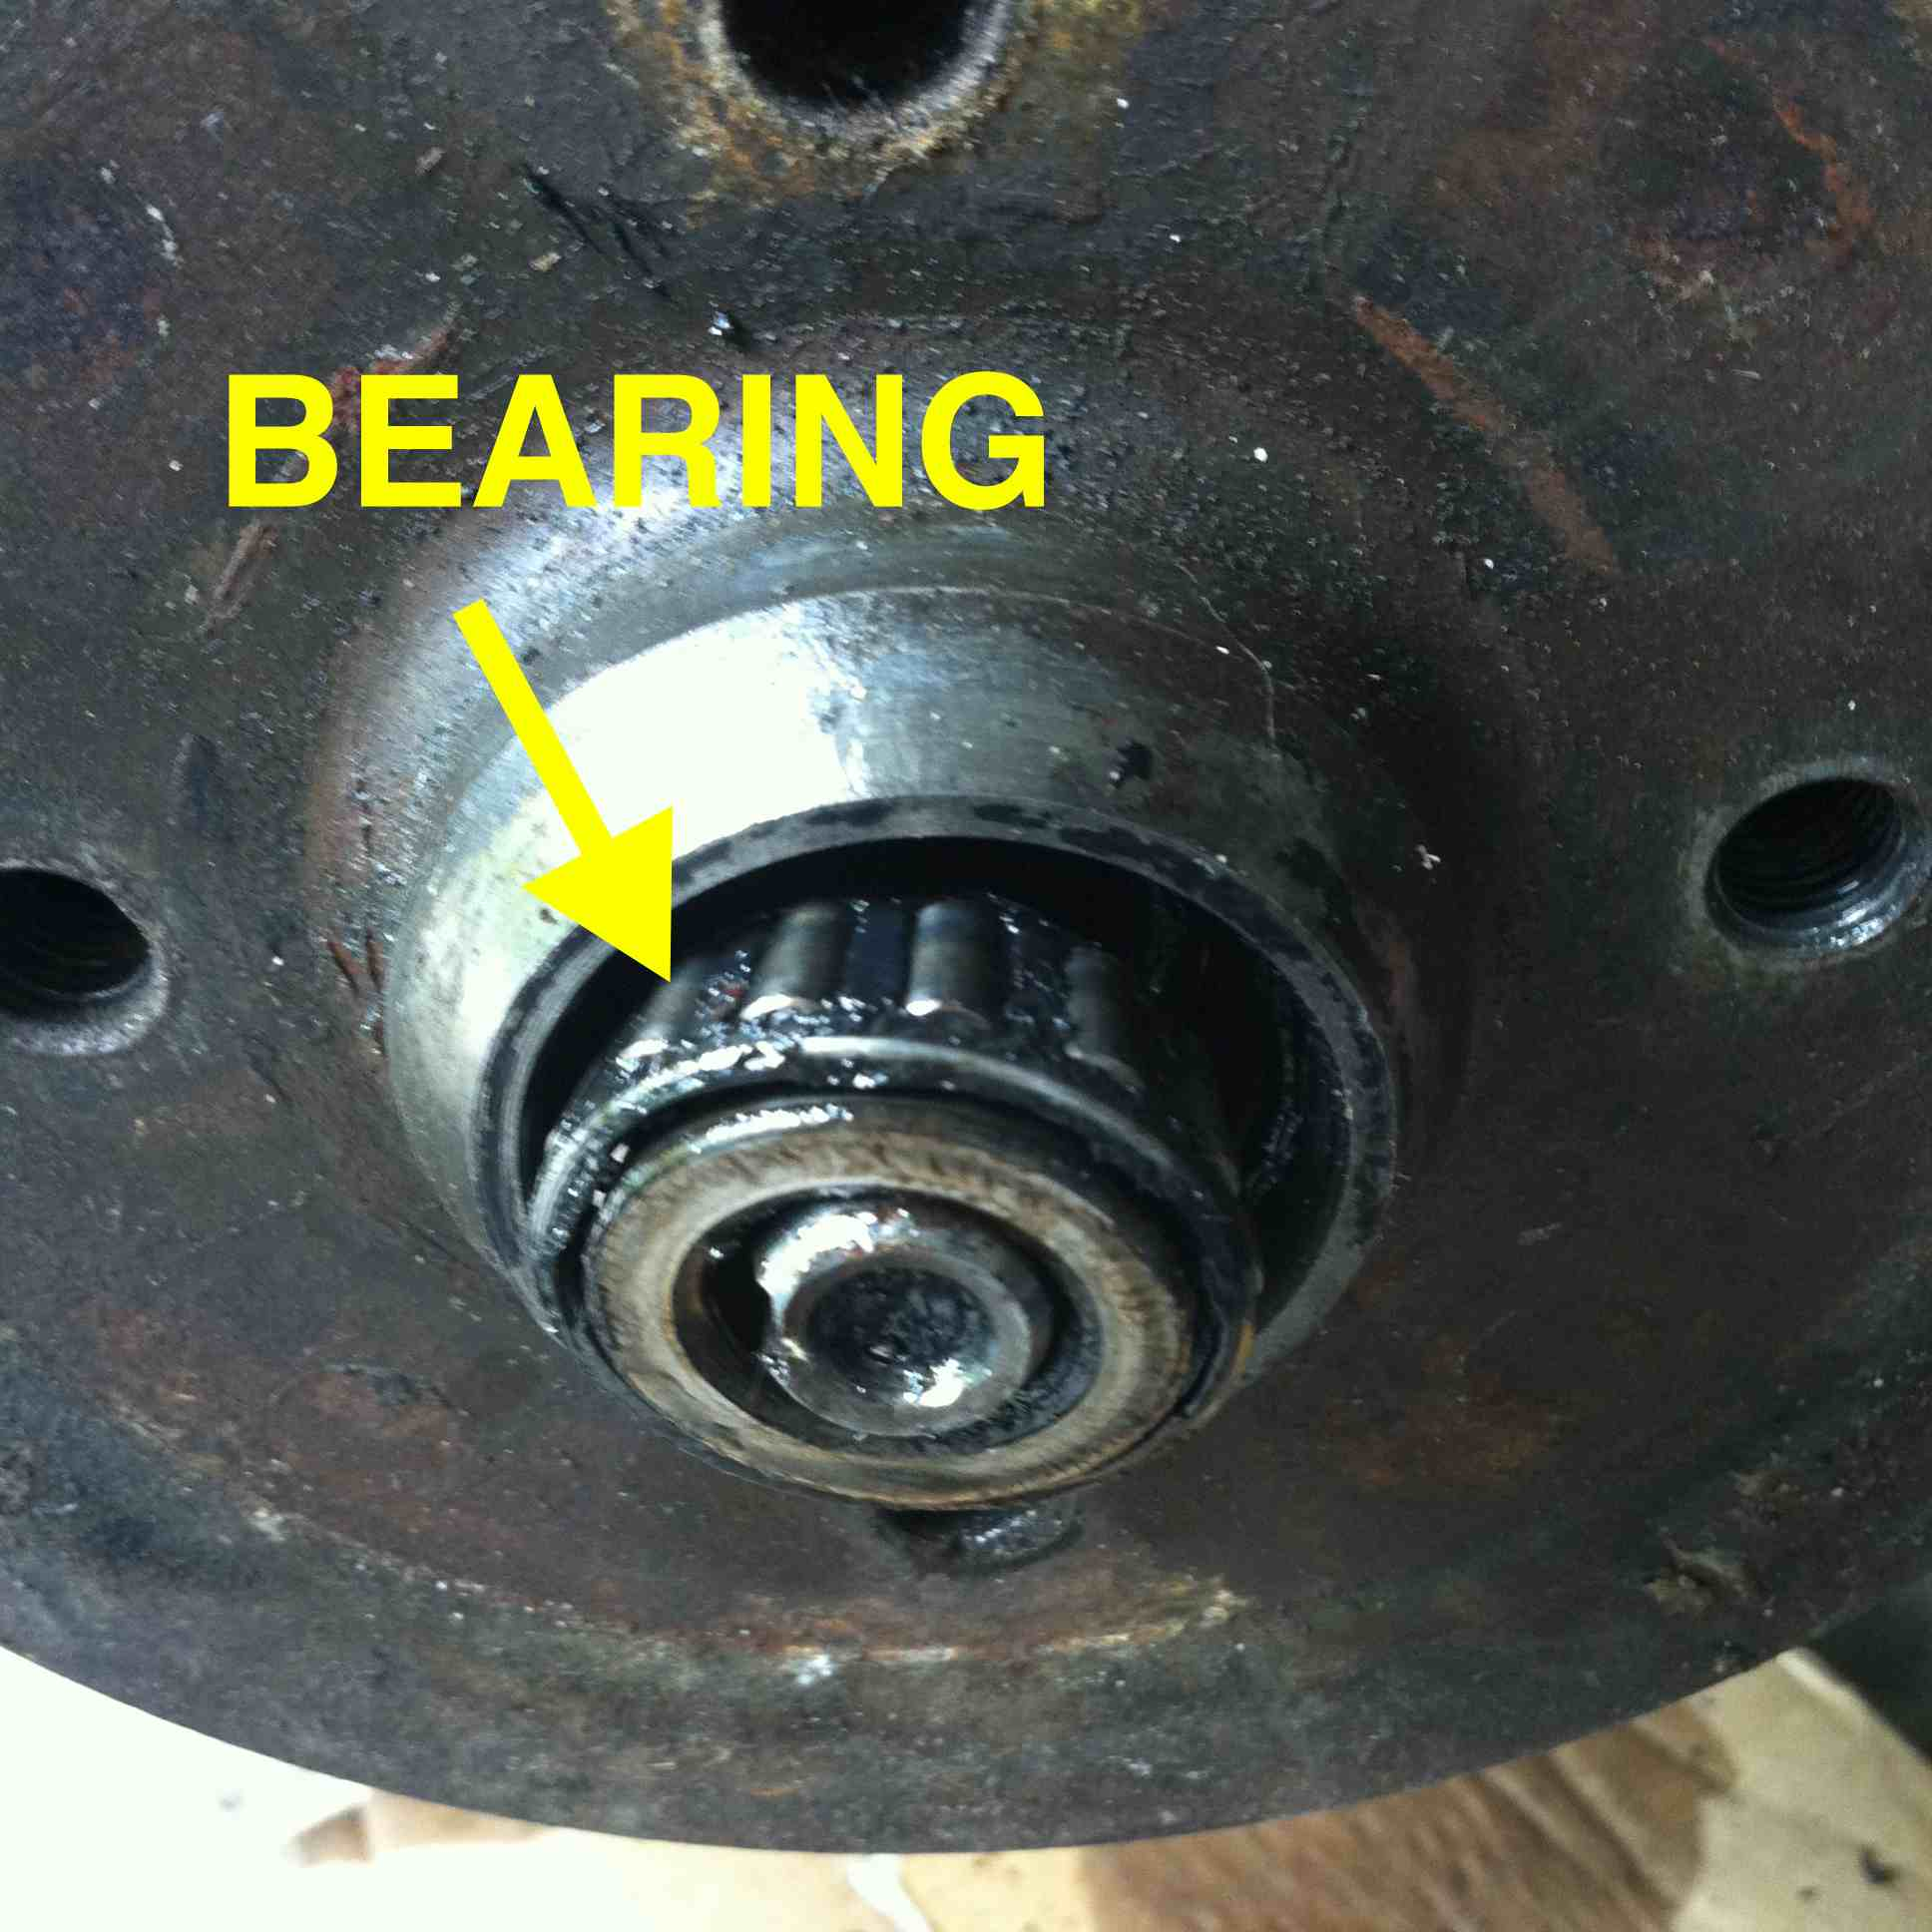 Repack or Change Wheel Bearings and Diagnose Problems